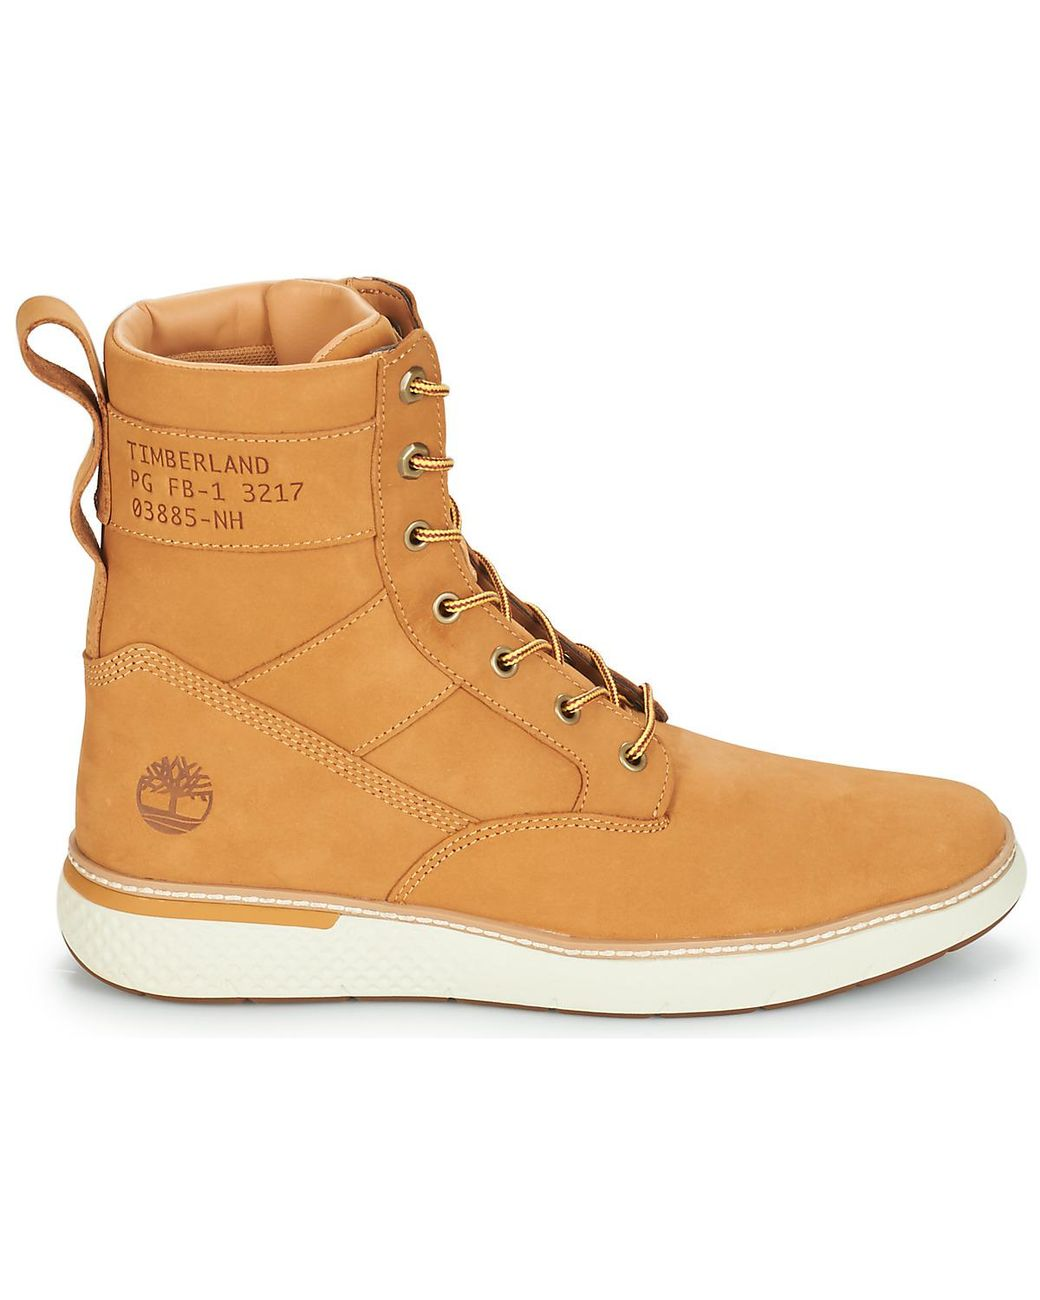 Cross Mid Boot Boots In For Utility Men Yellow Timberland Mark 8nZOPkXwN0